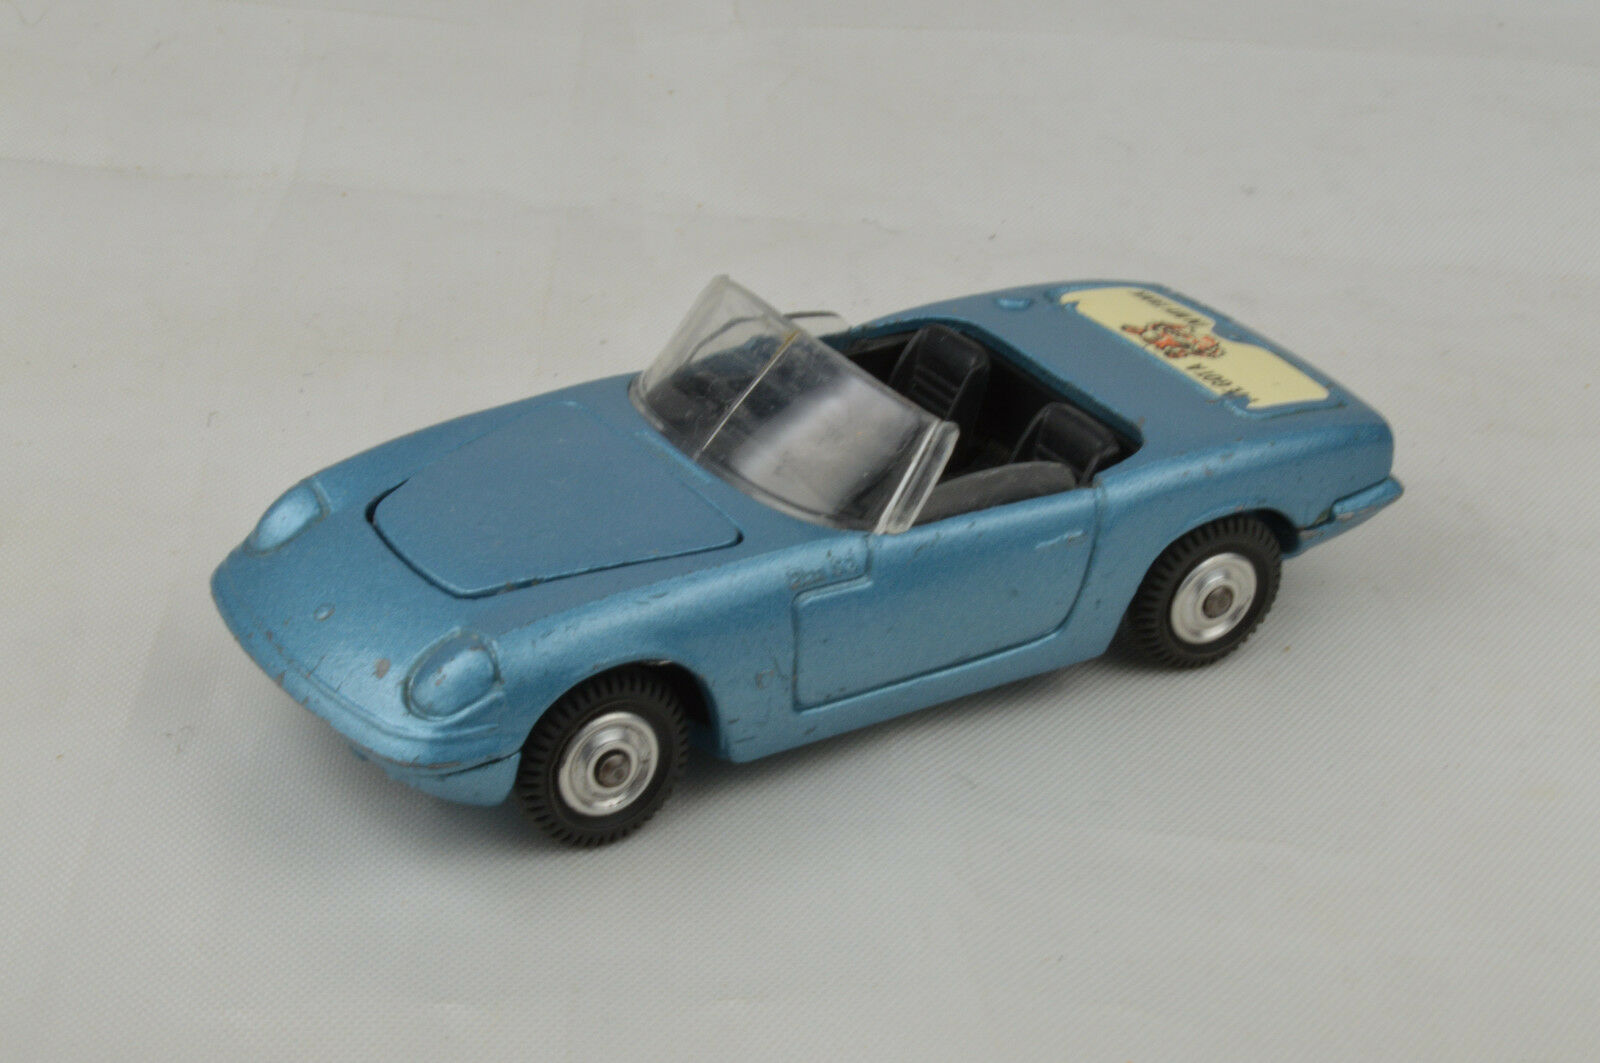 Corgi Lotus Elan S2  Tiger In My TanK  3 1 2  Long 1965-67 England Ex